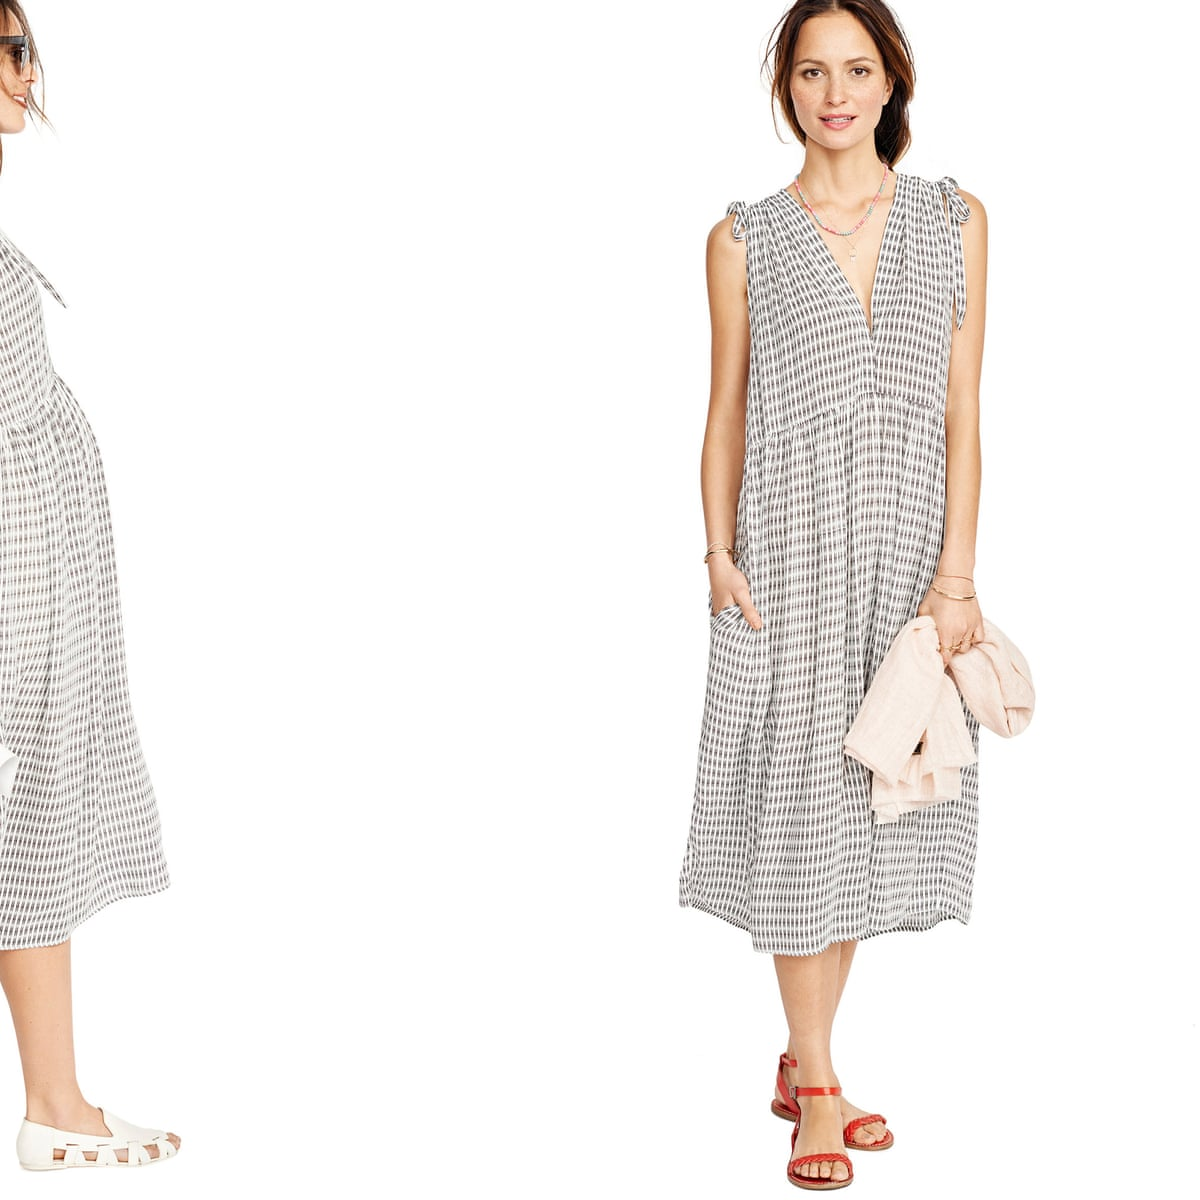 Is Maternity Wear Becoming A Thing Of The Past In Fashion Fashion The Guardian